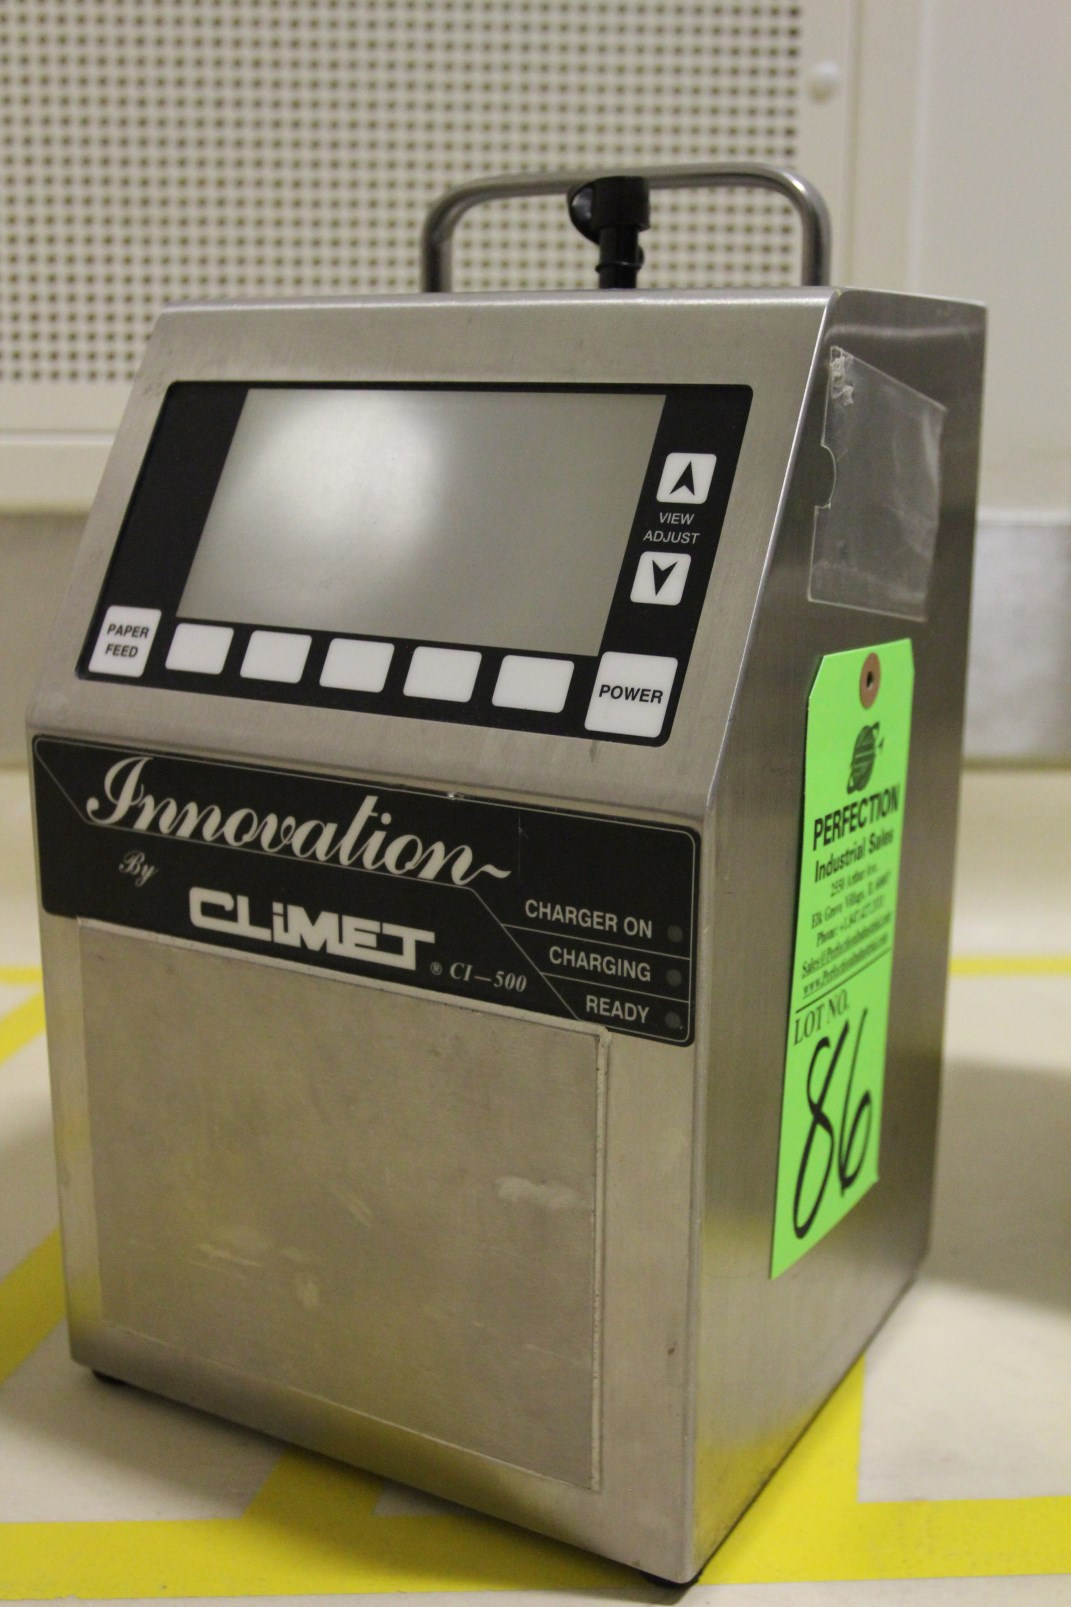 Lot 86 - 2009 Climet Innovation CI 500A Portable Laser Particle Counter, s/n 033773, Particle Sizes from .3mm